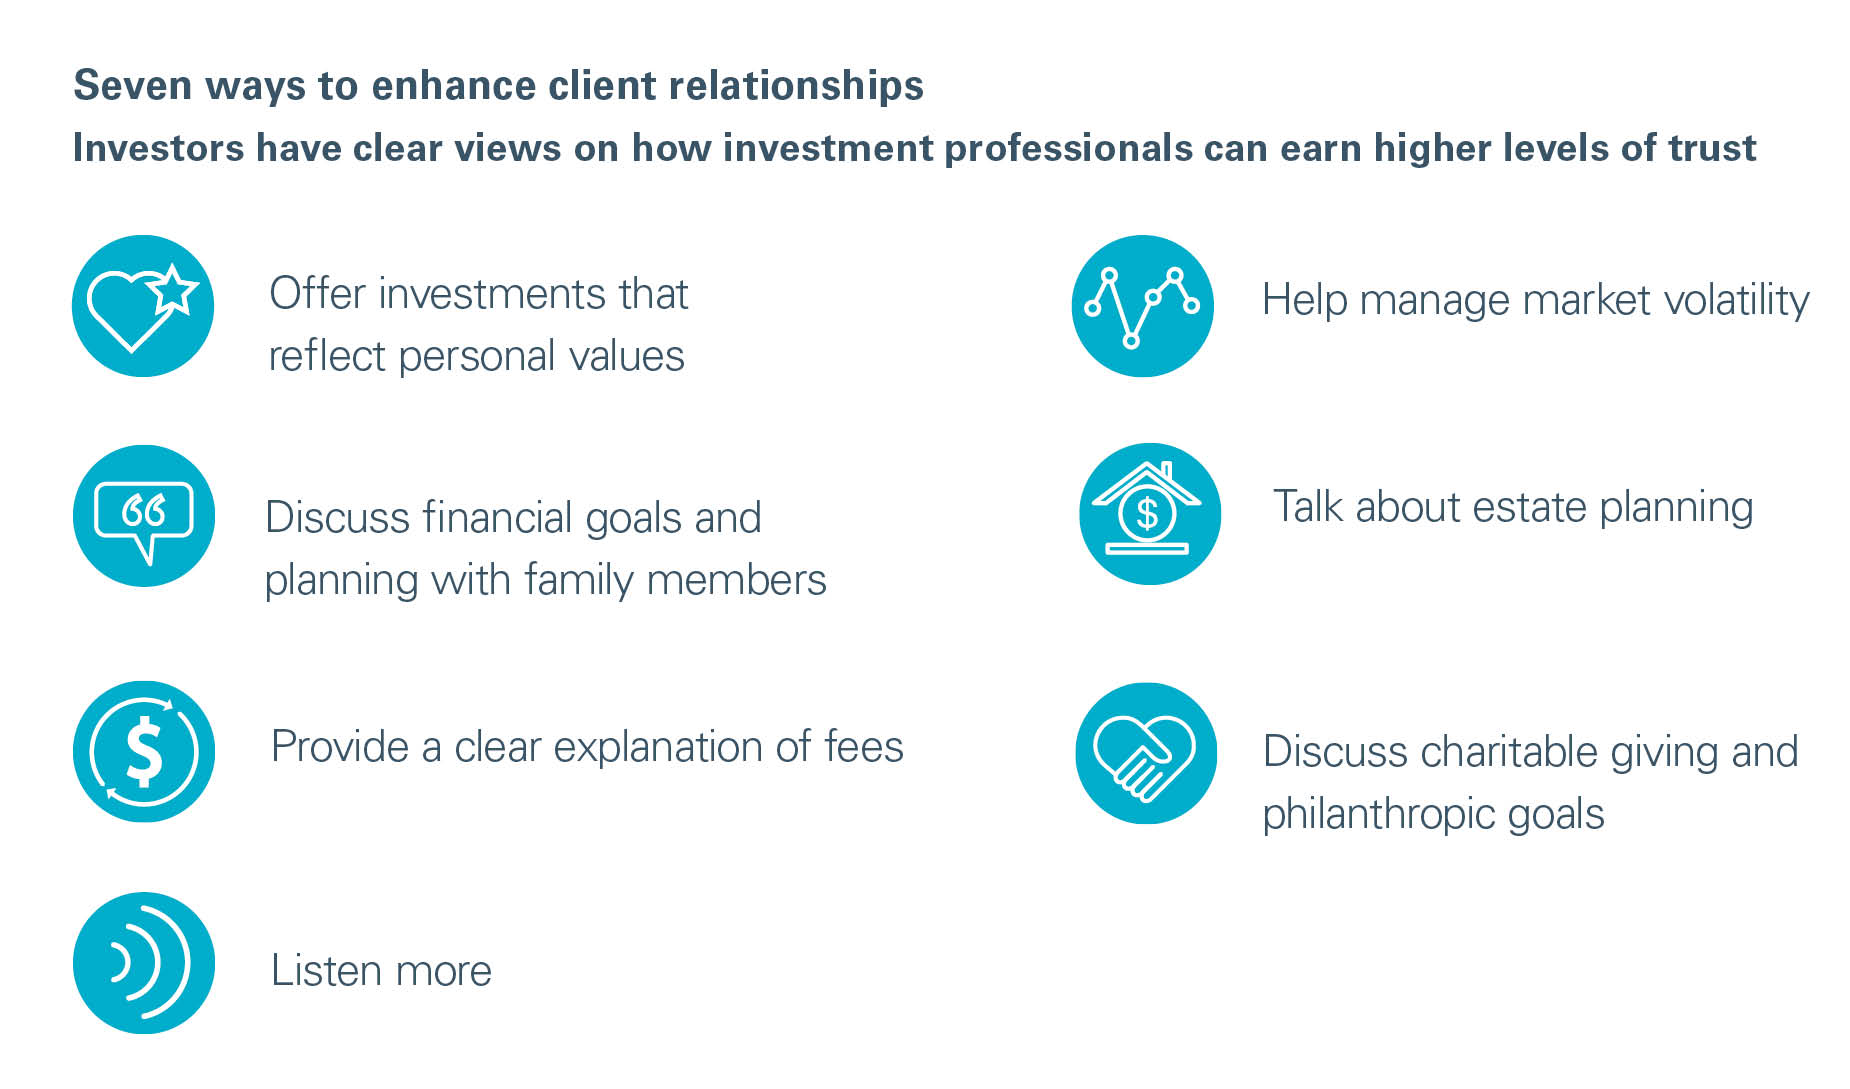 Seven ways to enhance client relationships